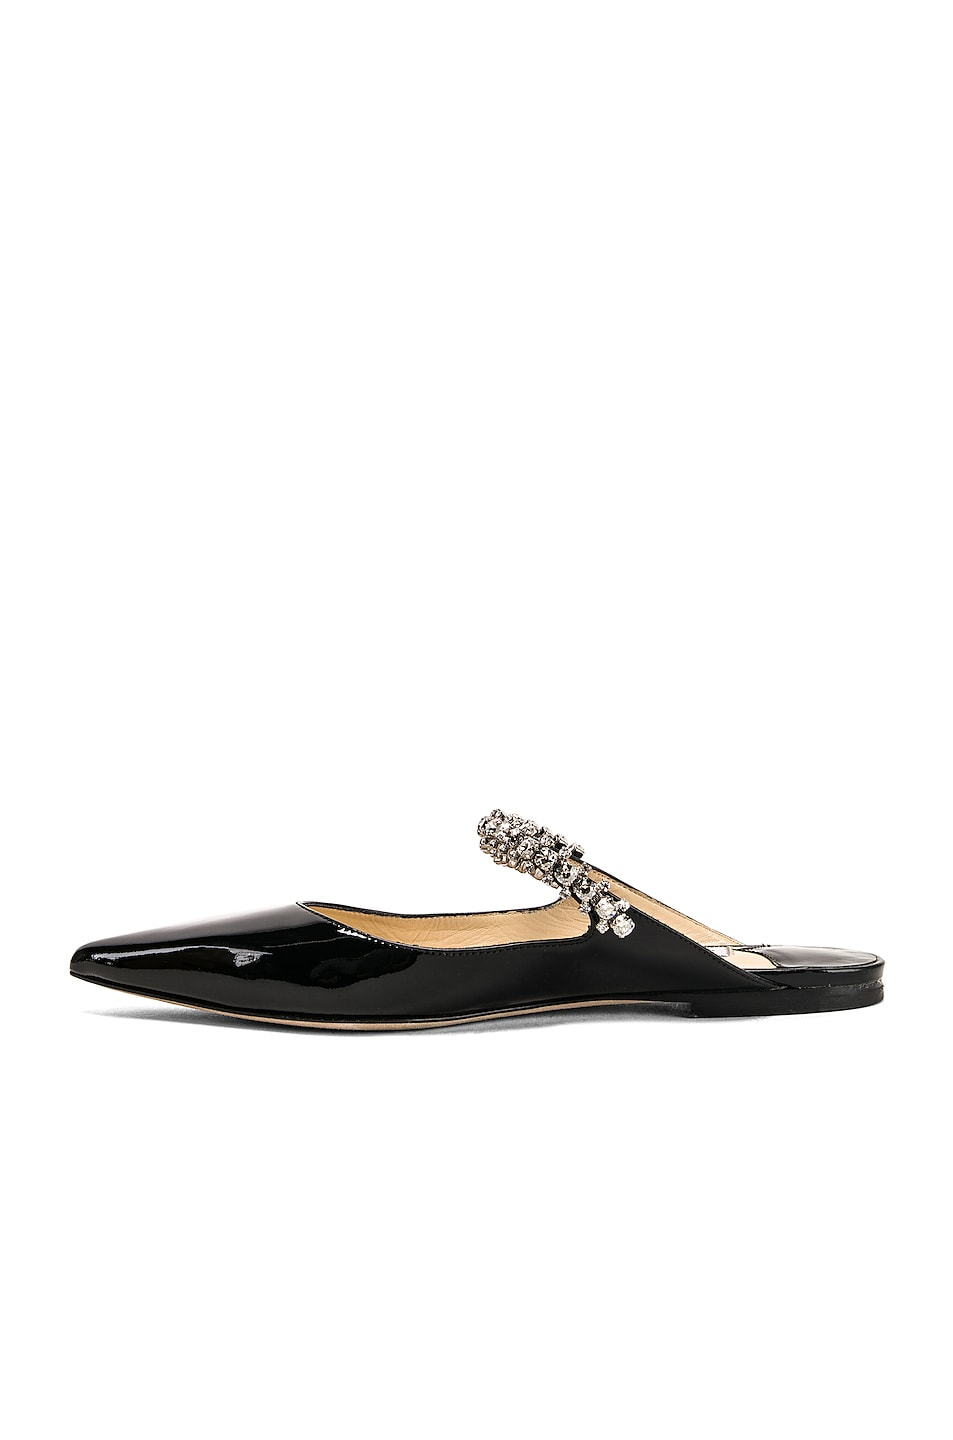 Image 5 of Jimmy Choo Bing Patent Leather Flat in Black